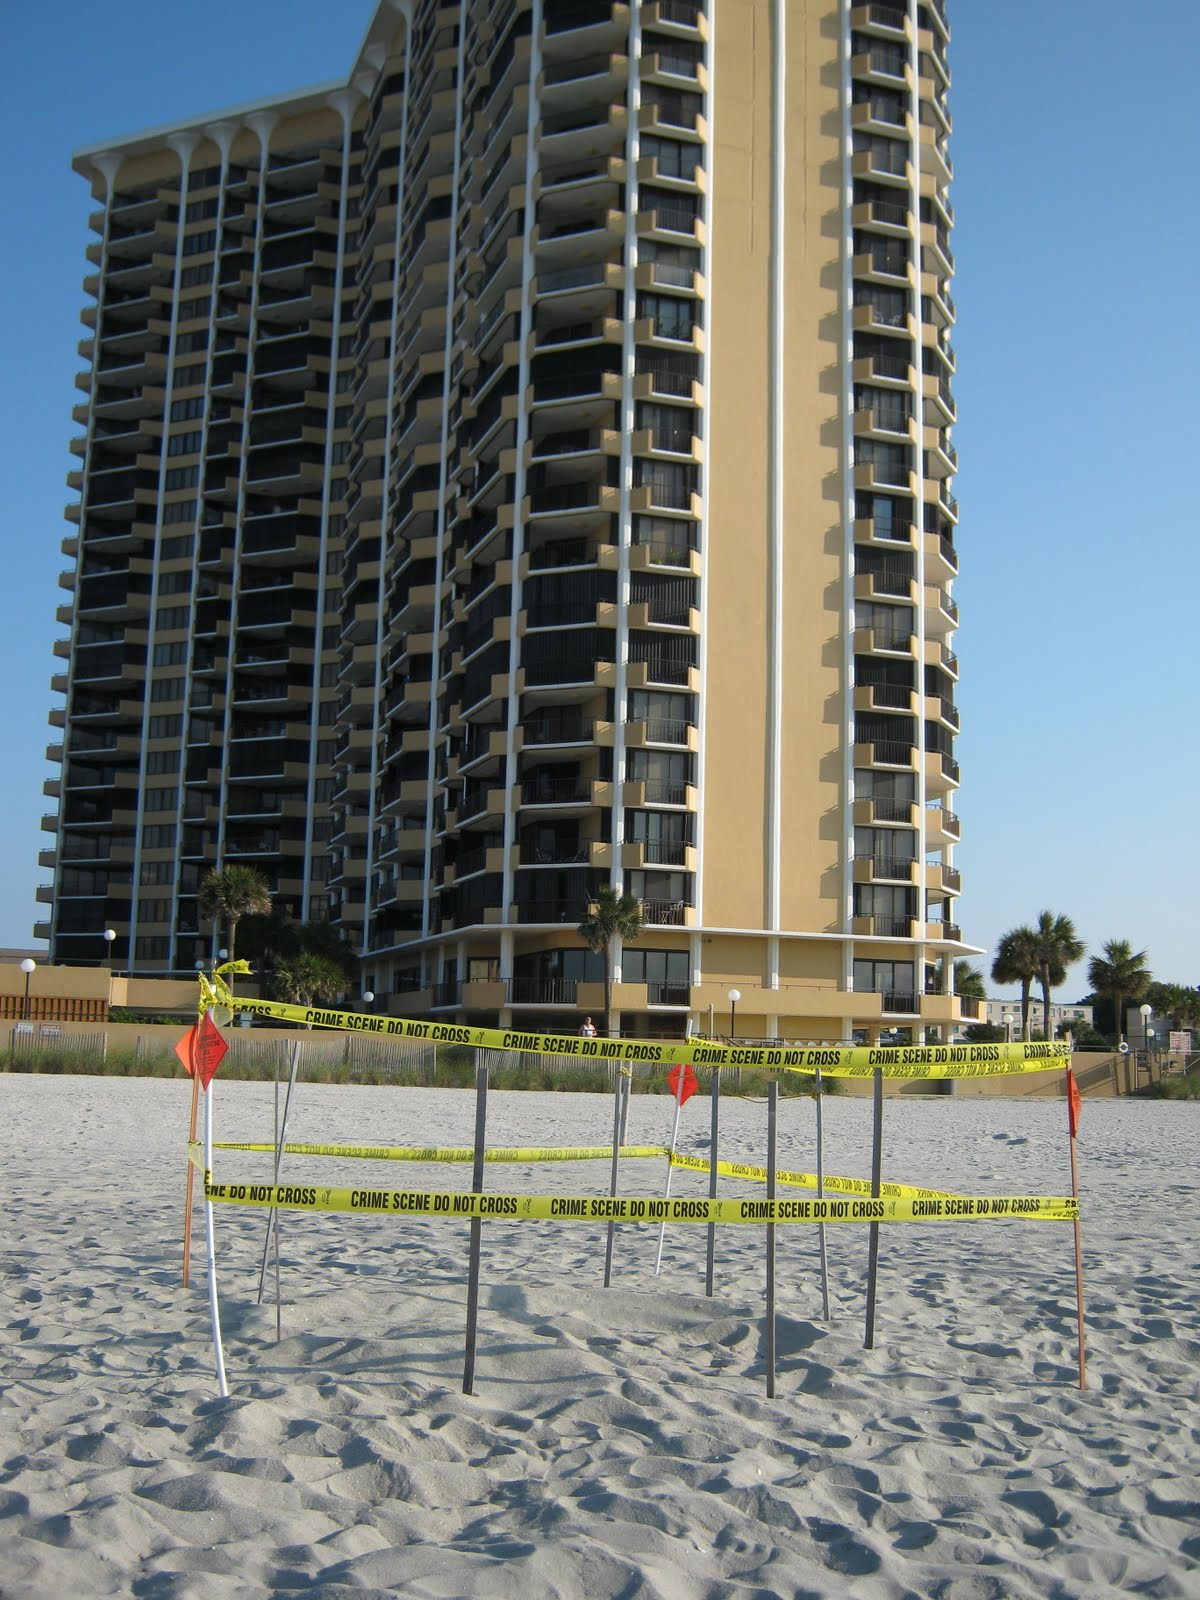 North myrtle beach sea turtle patrol myrtle beach nest relocated to walking up the beach at the high tide line donita was able to find the crawl following the crawl up the beach rob and donita found the body pit in front nvjuhfo Gallery